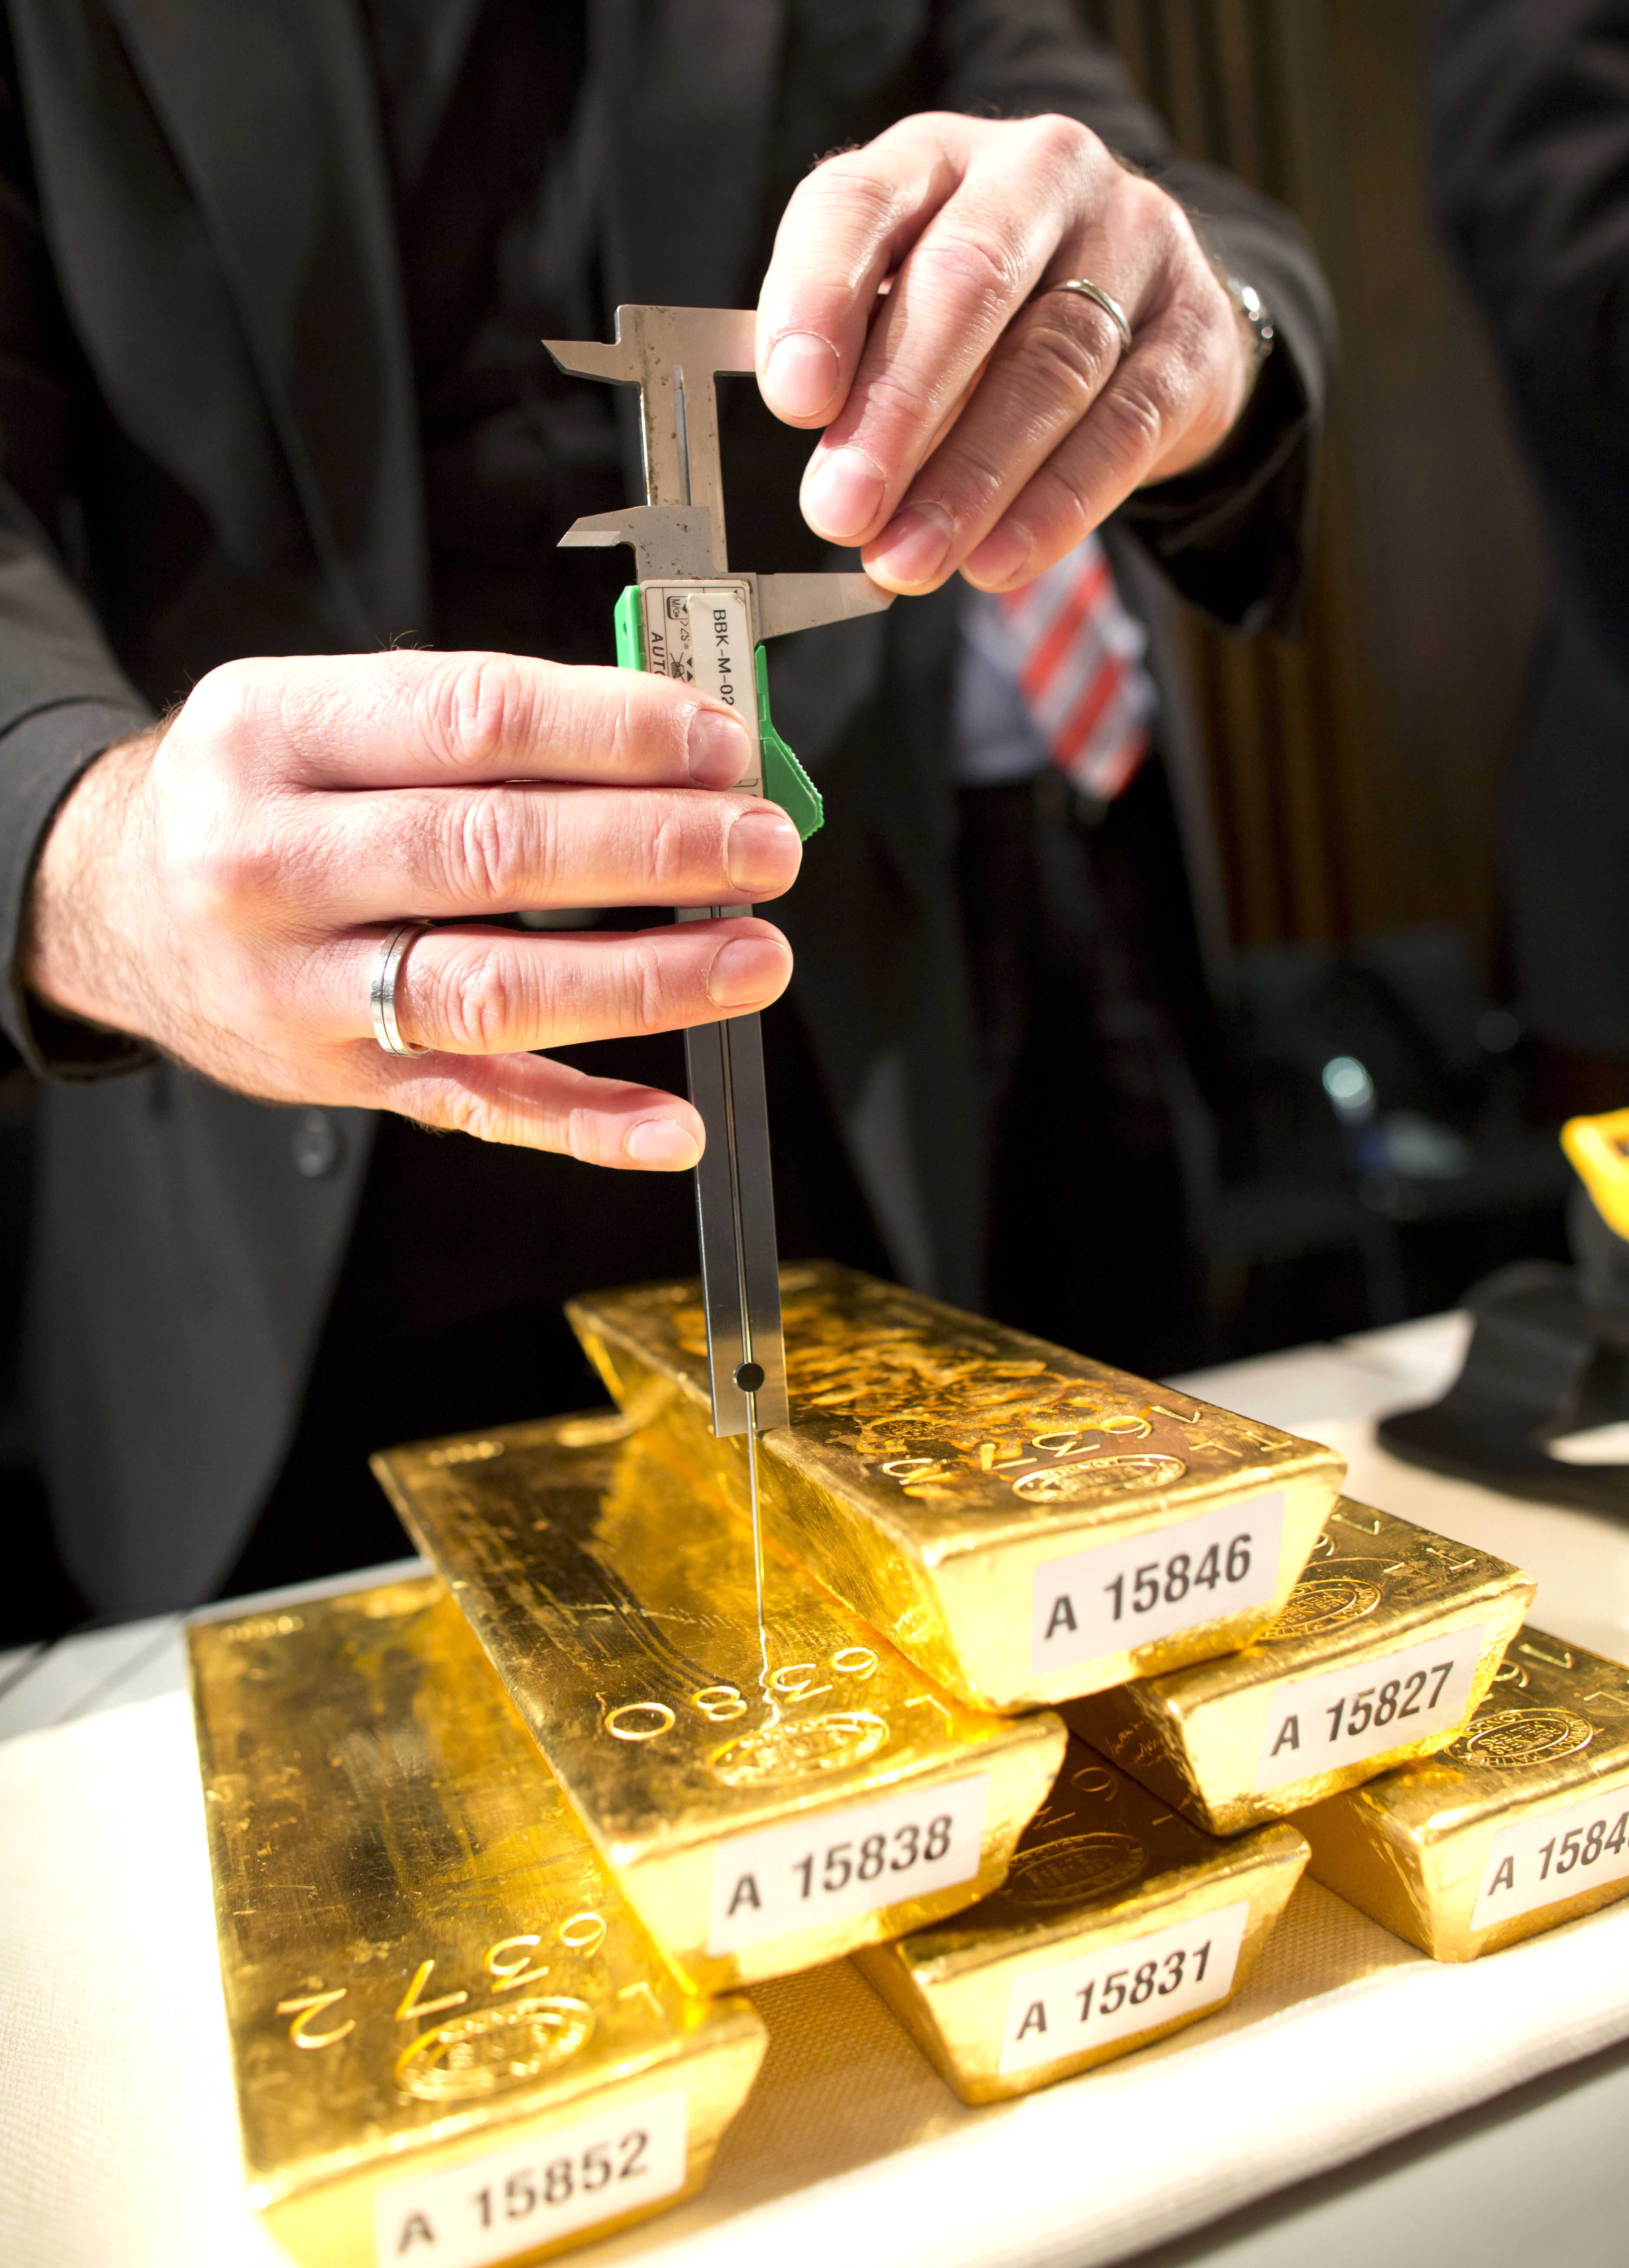 A bank employee meassures a gold ingot during a press conference at the German central bank in Frankfurt, Germany, Wednesday Jan. 16, 2013. Germany's central bank is to bring back home some US $36 billion ( 27 billion euro) worth of gold stored in the United States and France. The Bundesbank said in a statement Wednesday that it will repatriate all 374 tons of gold it had stored in Paris by 2020. An additional 300 tons - equivalent to 8 percent of the Bundesbank's total reserves worth about US$183 billion _ will also be shipped from New York to Frankfurt. Frankfurt will hold half of Germany's 3,400 tons of gold by 2020, with New York retaining 37 percent and London storing 13 percent. The move follows criticism from Germany's independent Federal Auditors' Office last year bemoaning the central bank's oversight of gold reserves abroad. (AP Photo/dpa/ Frank Rumpenhorst)